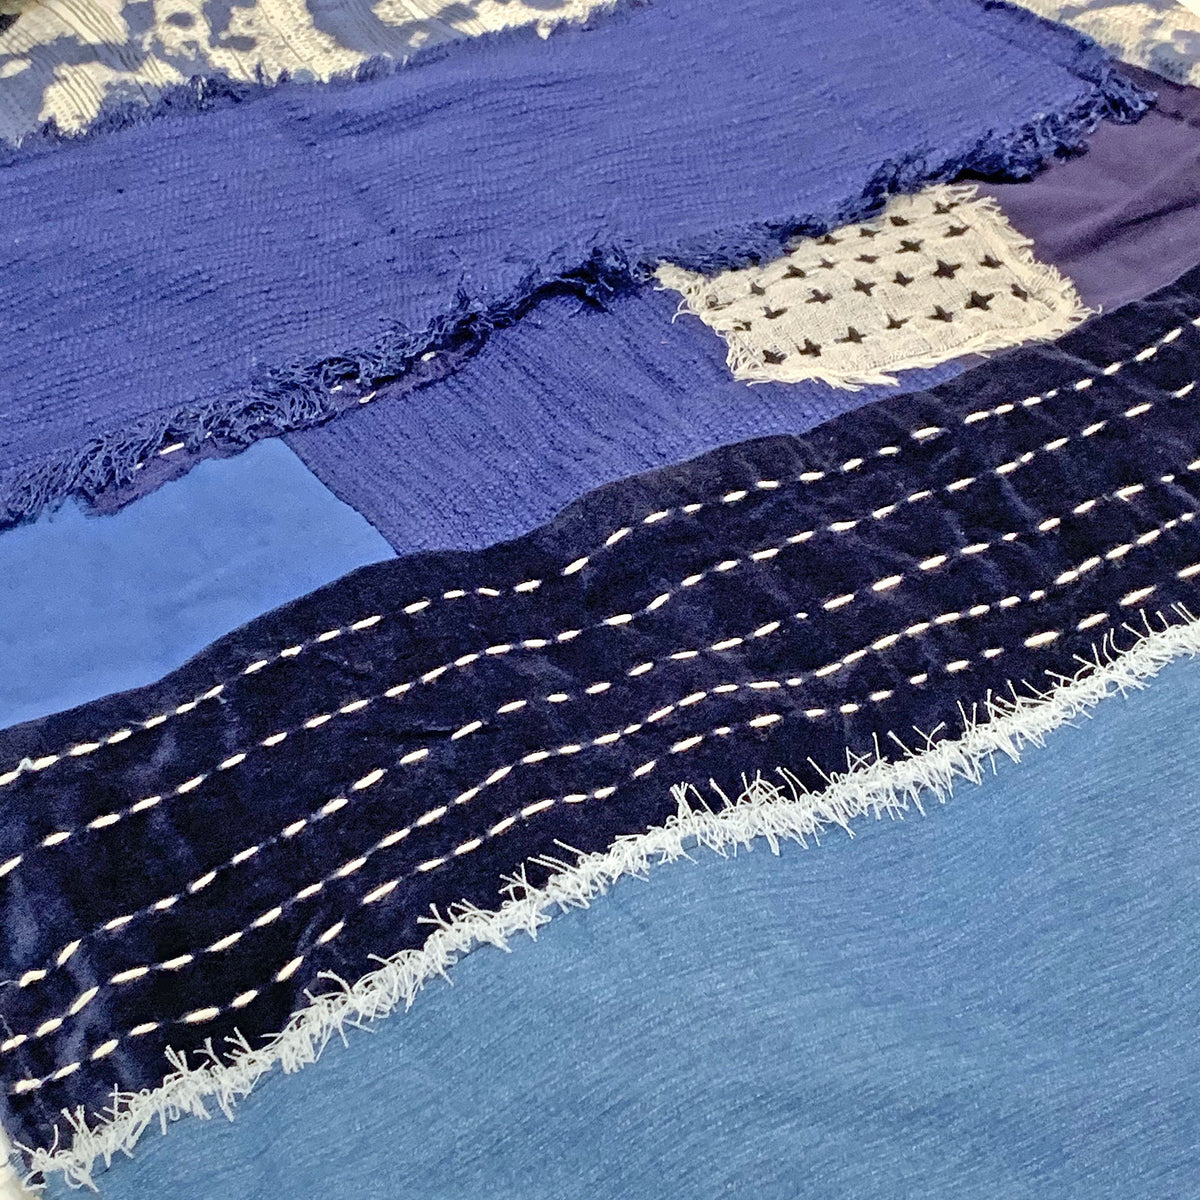 Detail of indigo dyed throw with white stitching across the indigo fabric